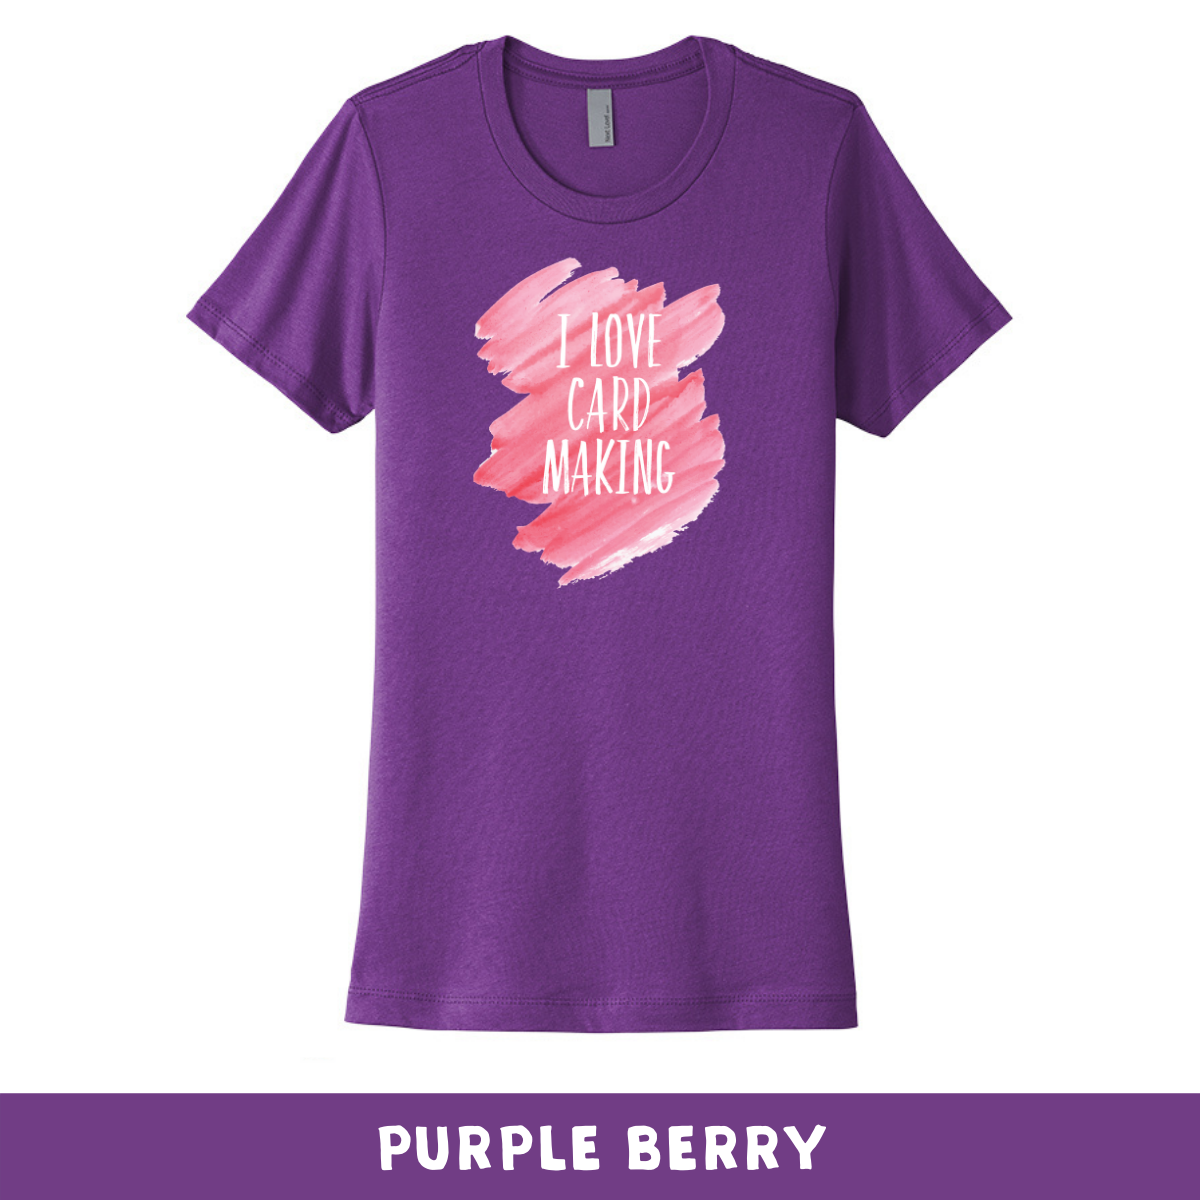 Purple Berry - Crew Neck Boyfriend Tee - I Love Cardmaking